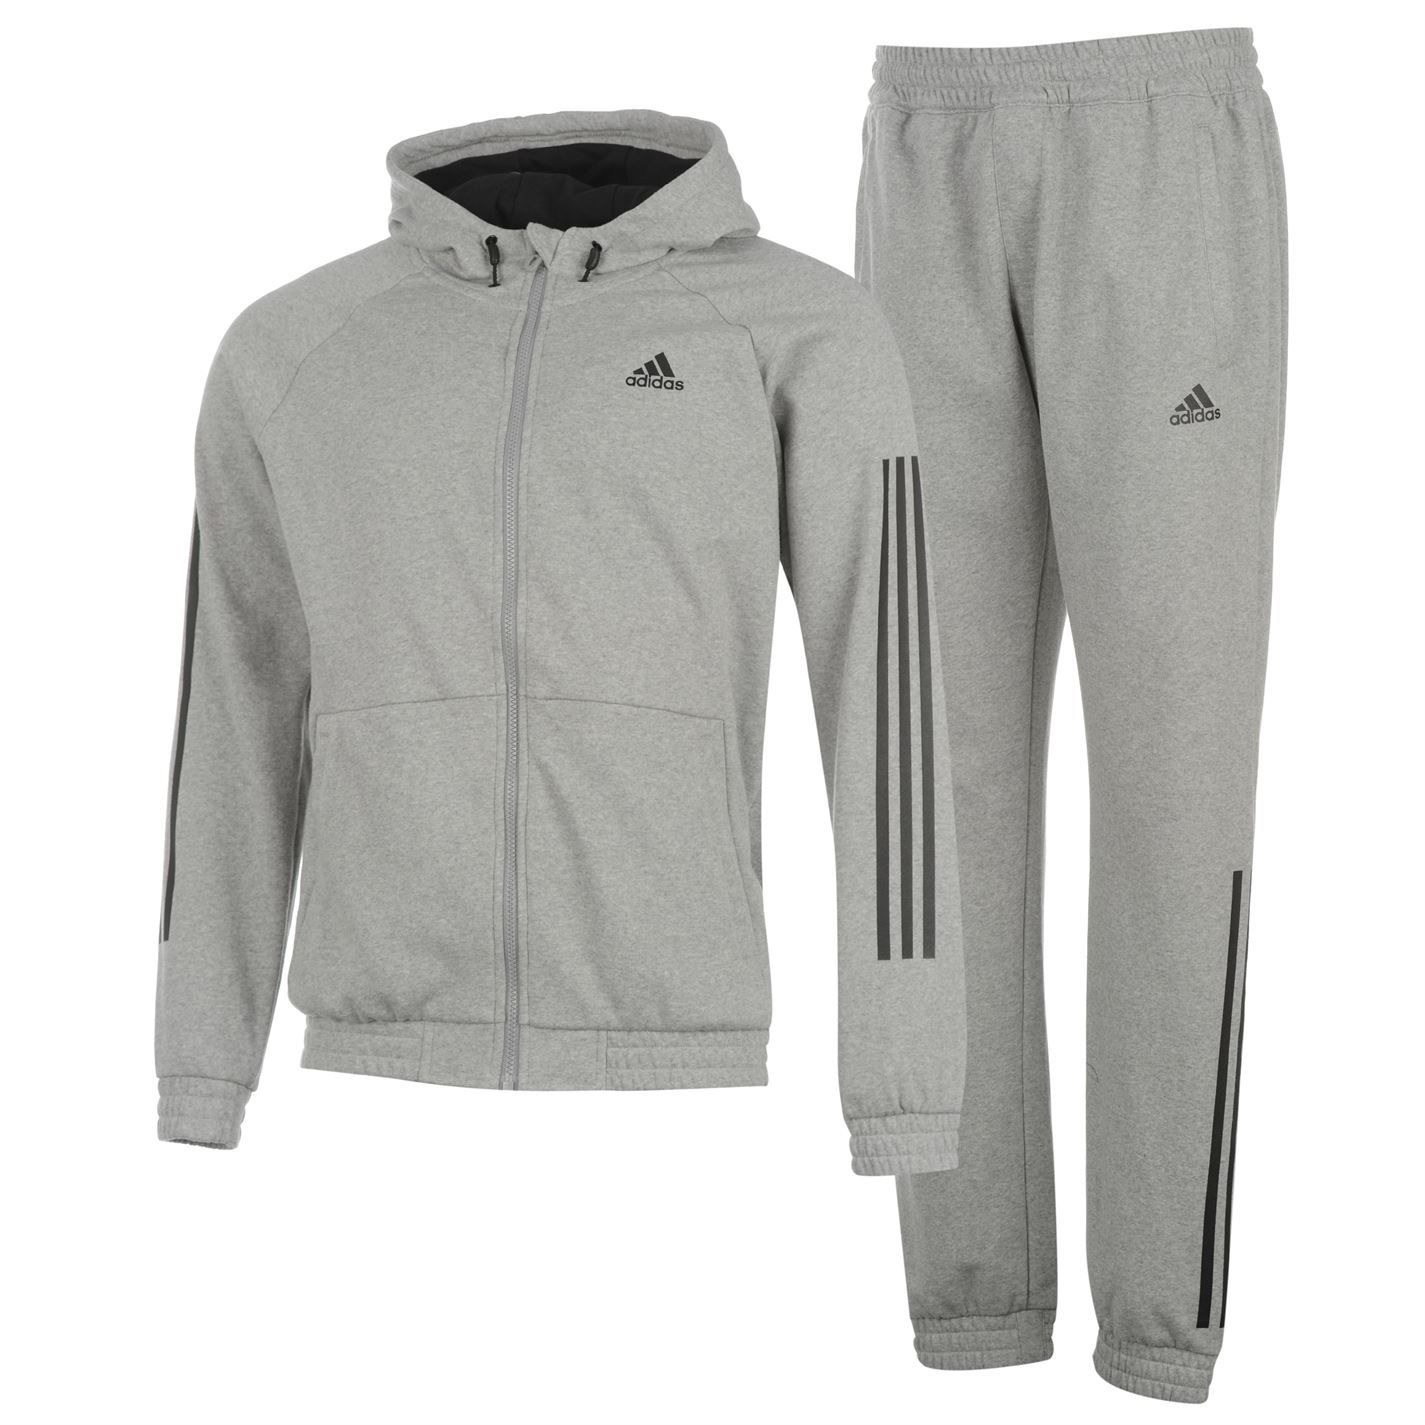 Mens Tracksuit | Track suit men